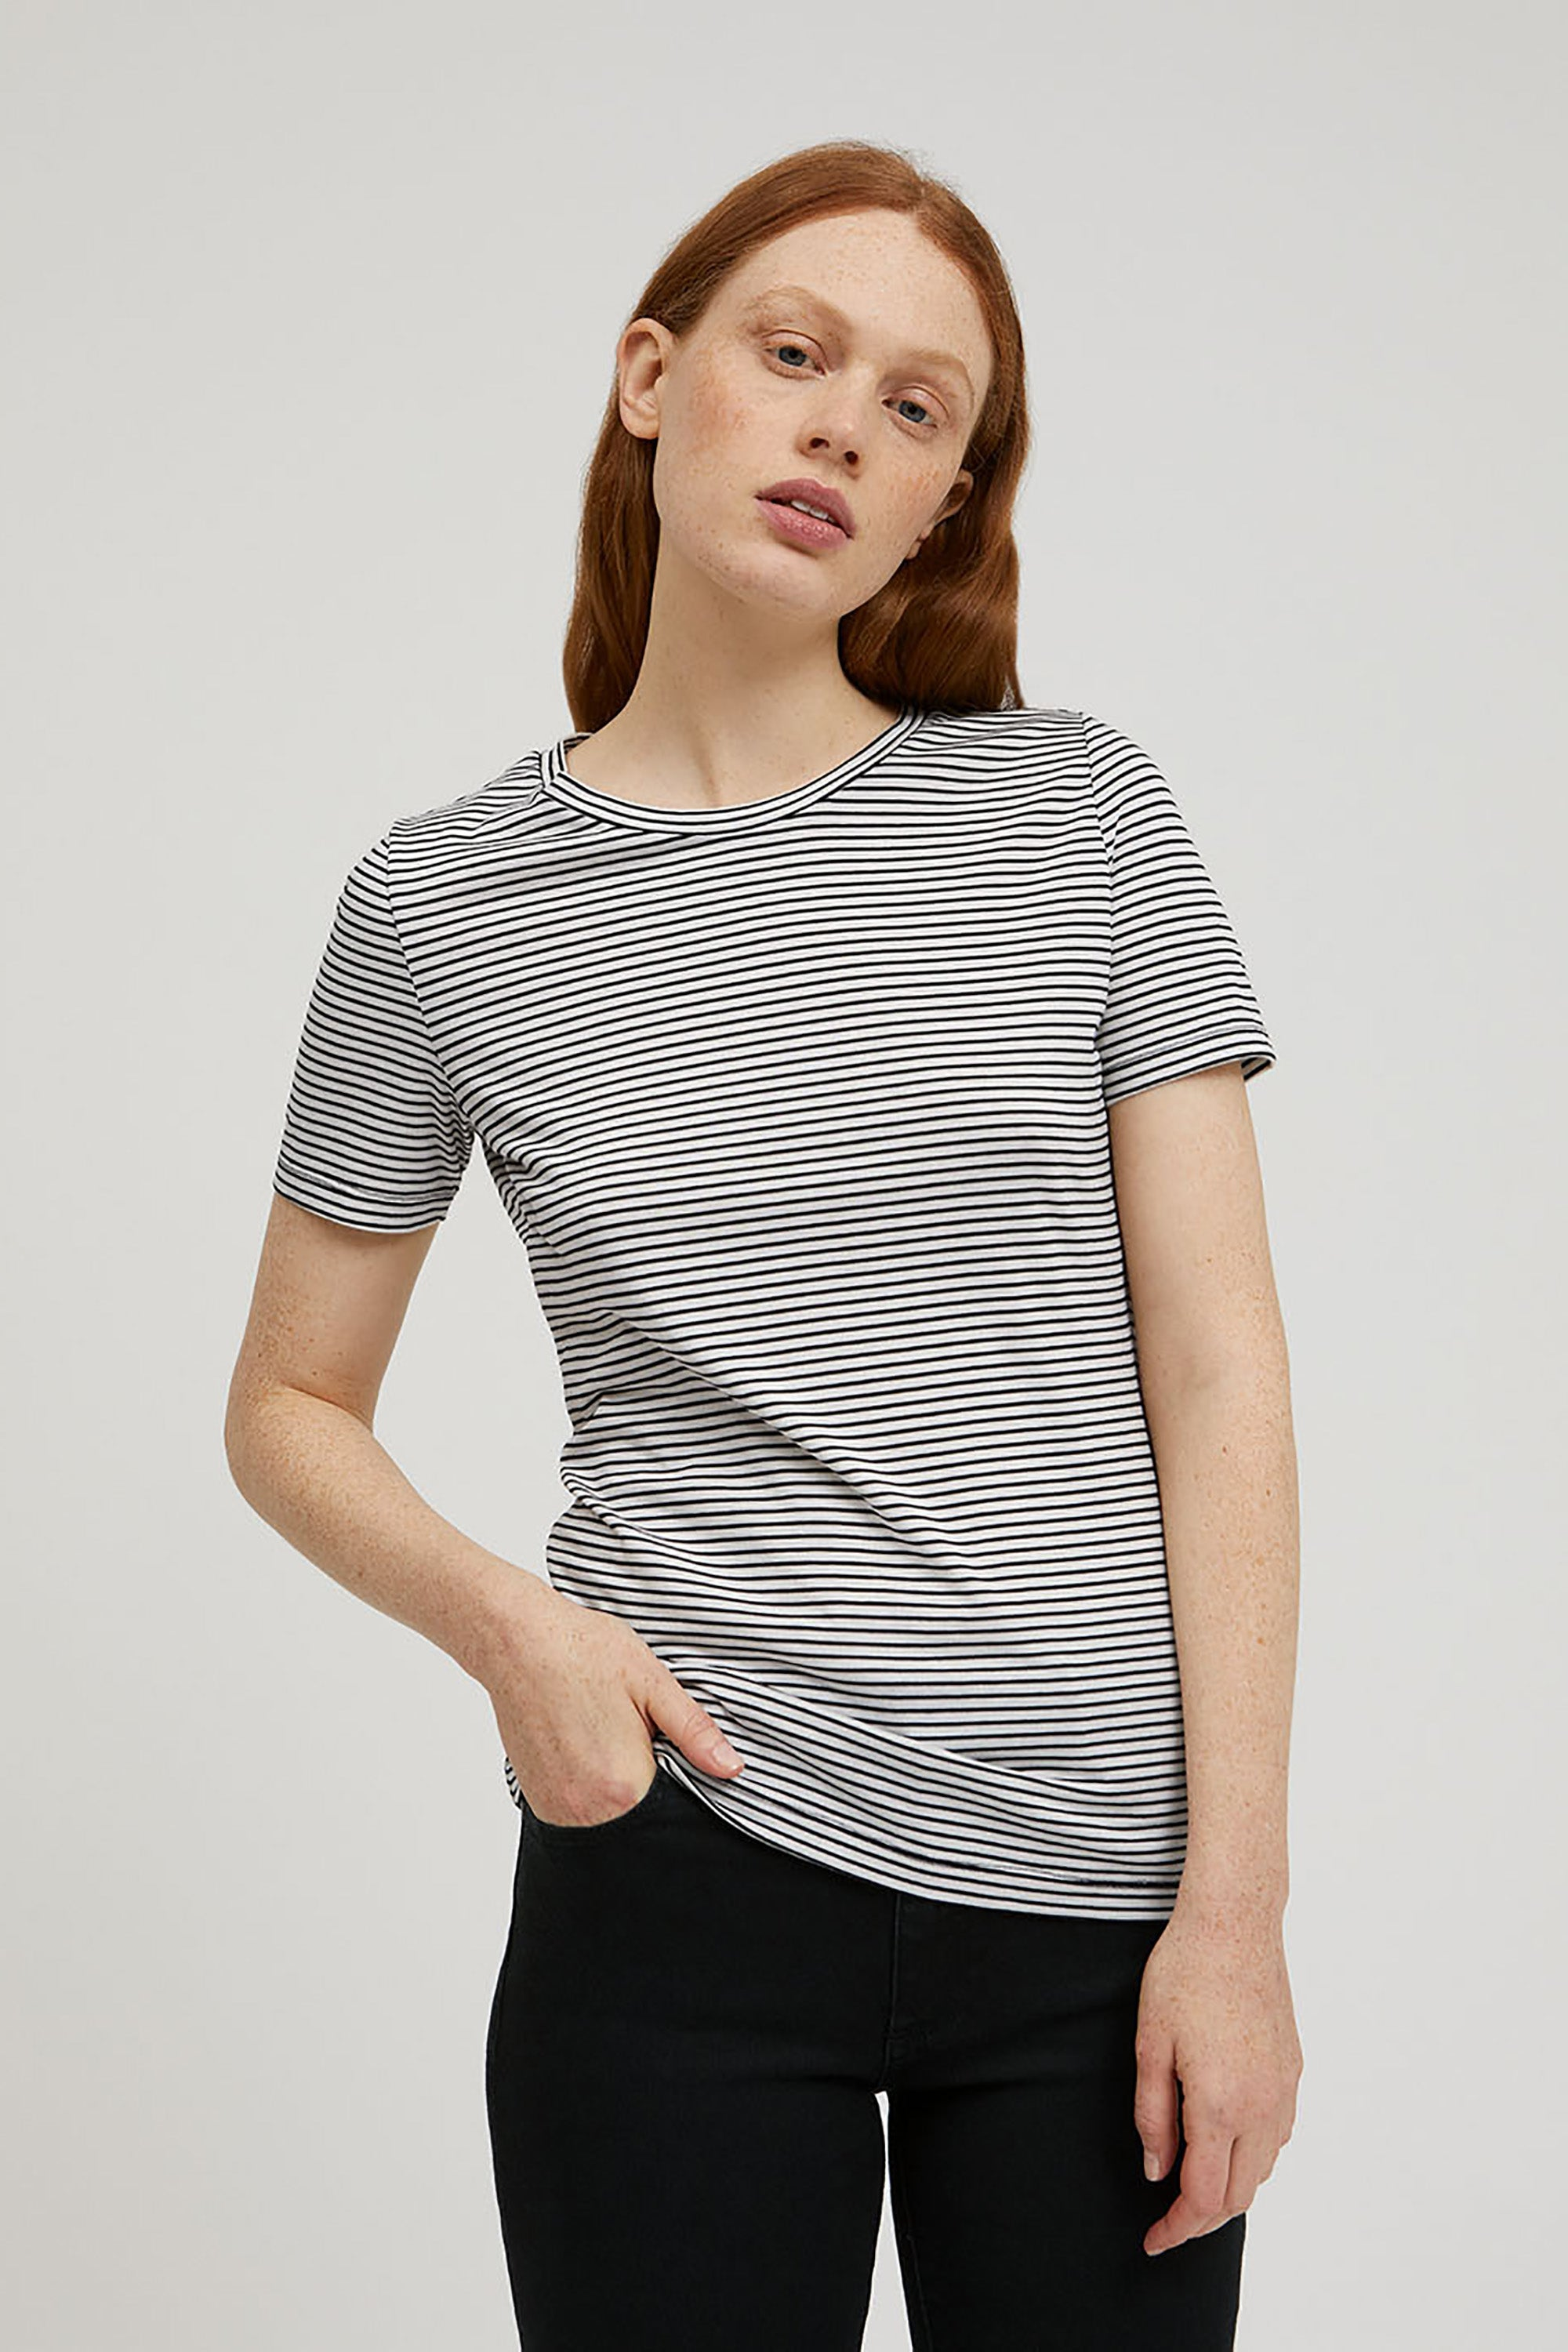 lidiaa small stripes t-shirt black oatmilk from thegreenlabels